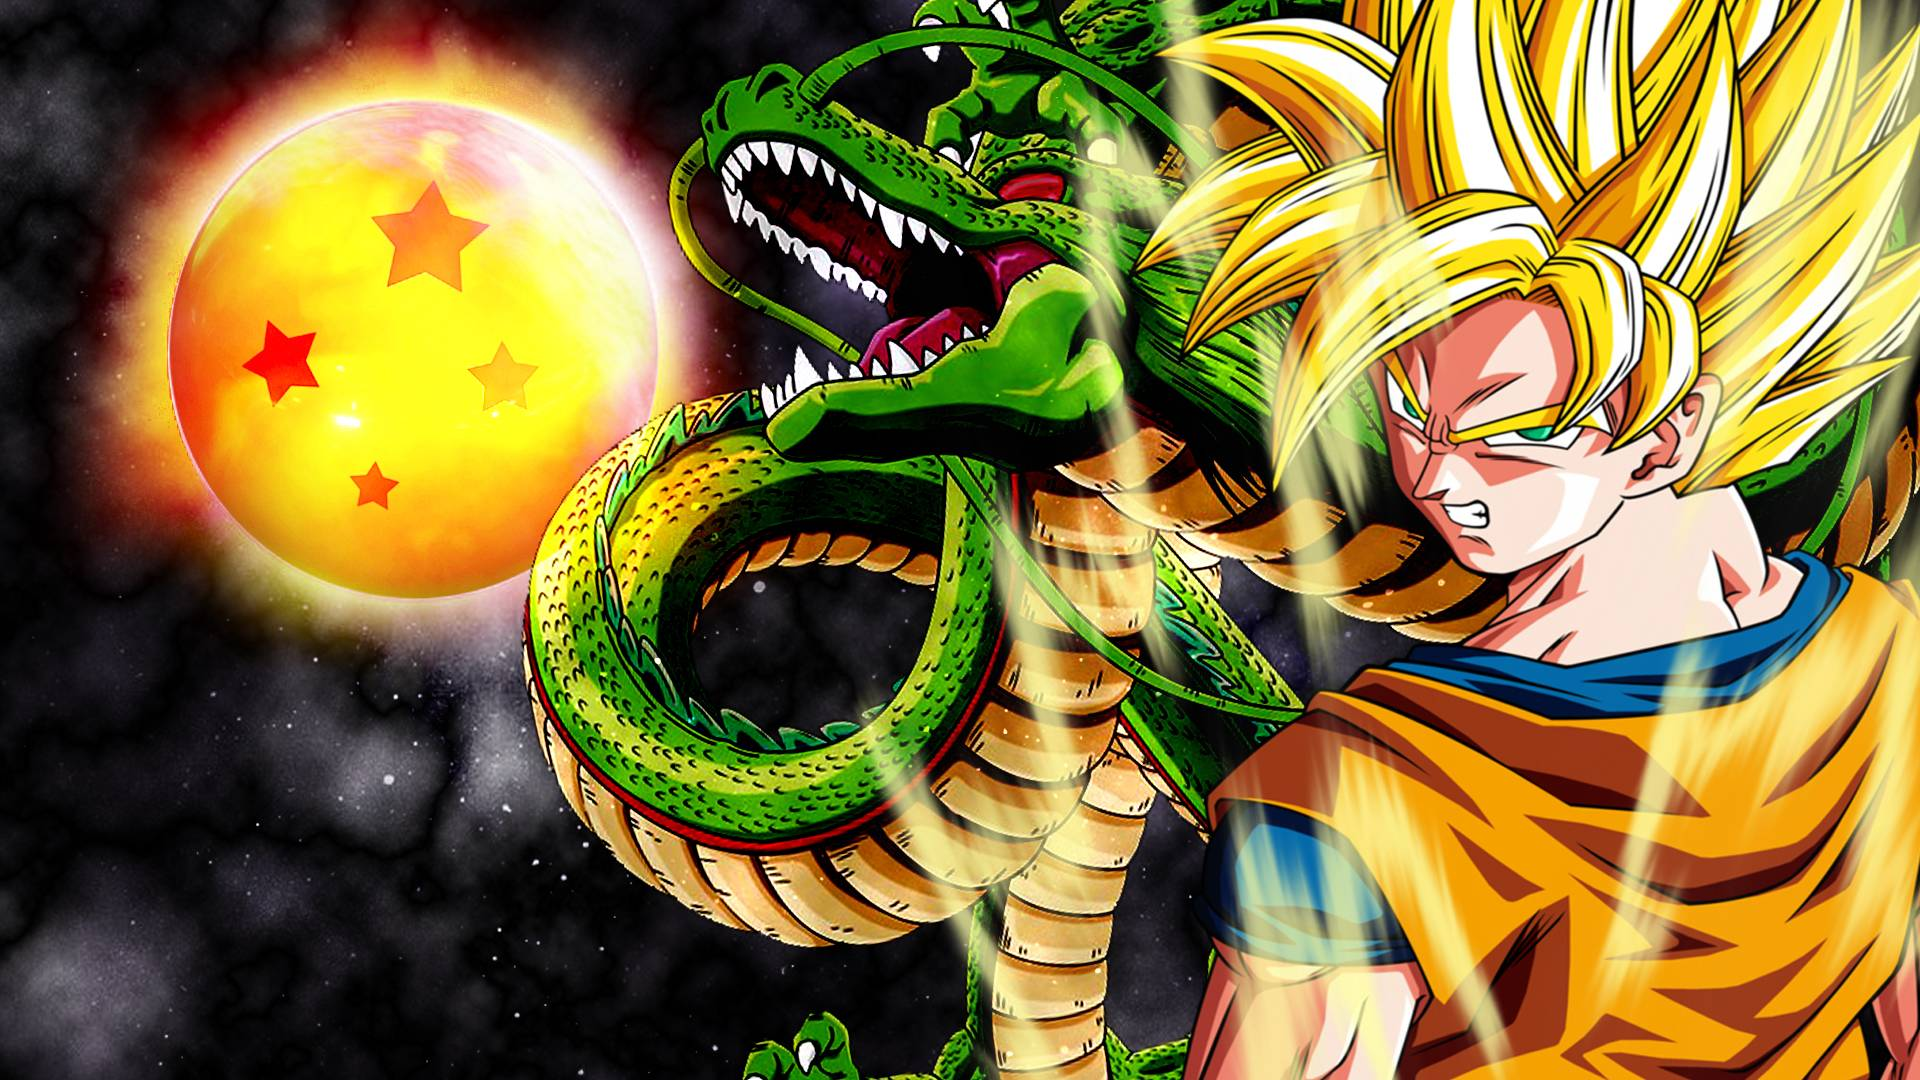 Download Dragon Ball Z Full HD Wallpaper Gallery